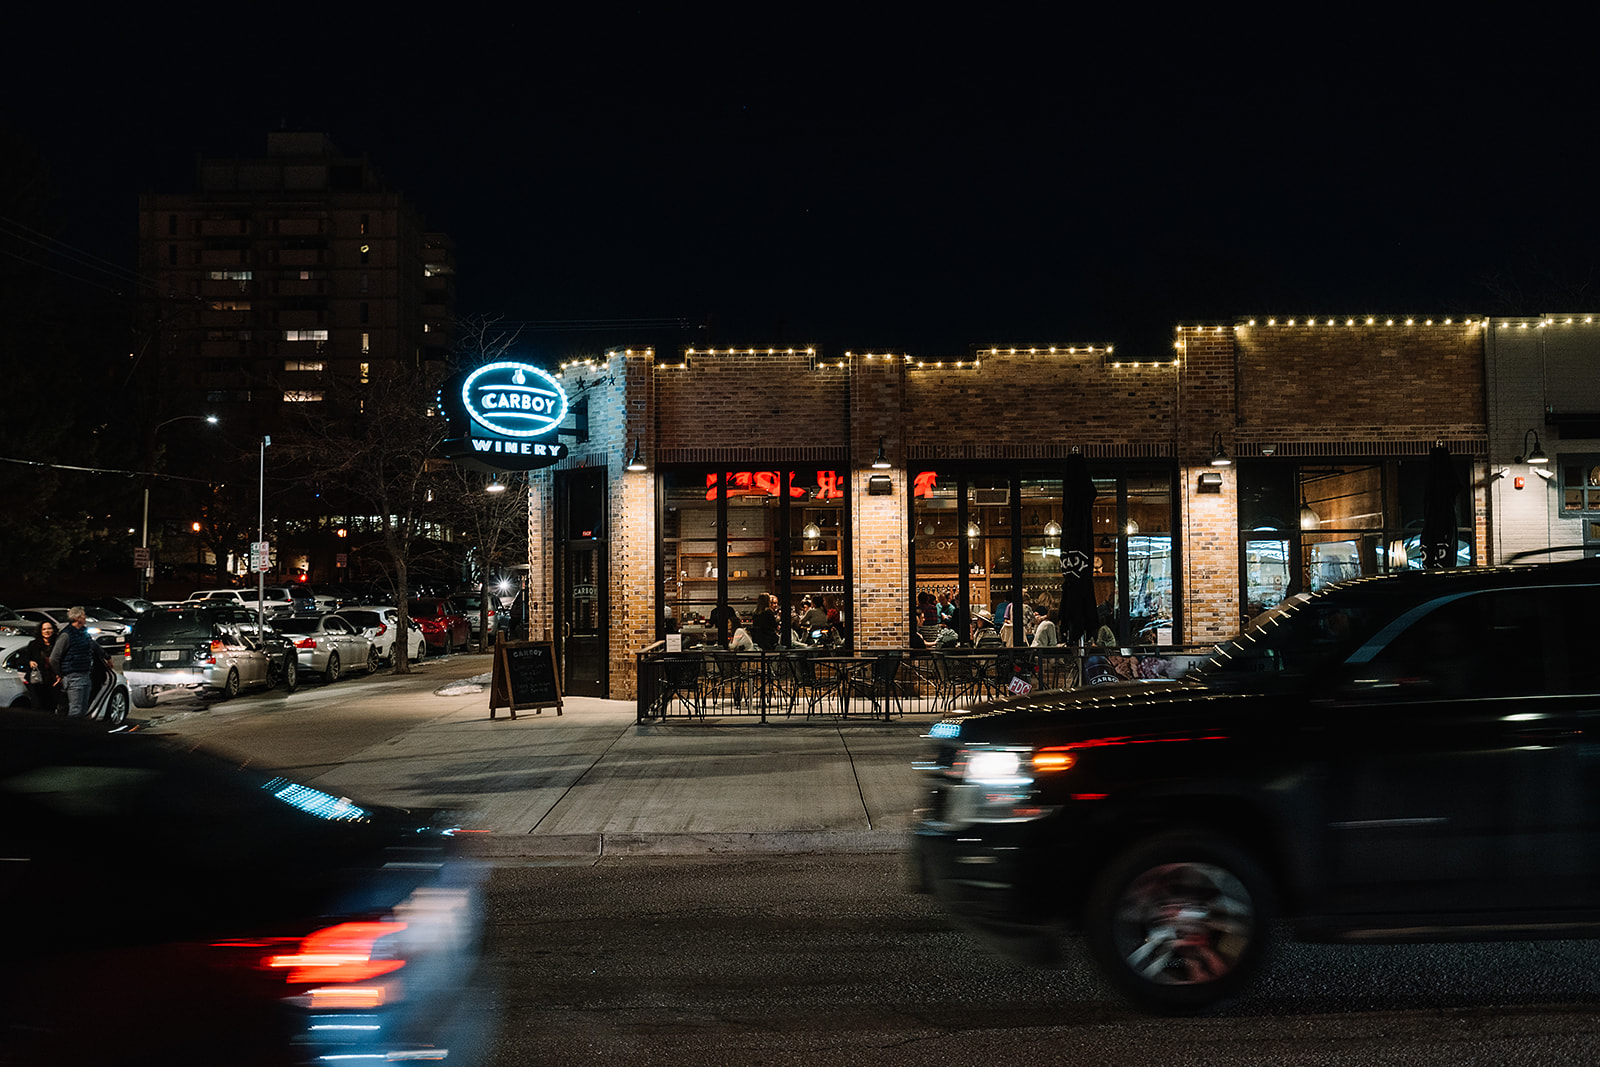 Carboy Winery Denver exterior at night with cars driving by and the Carboy sign lit up.